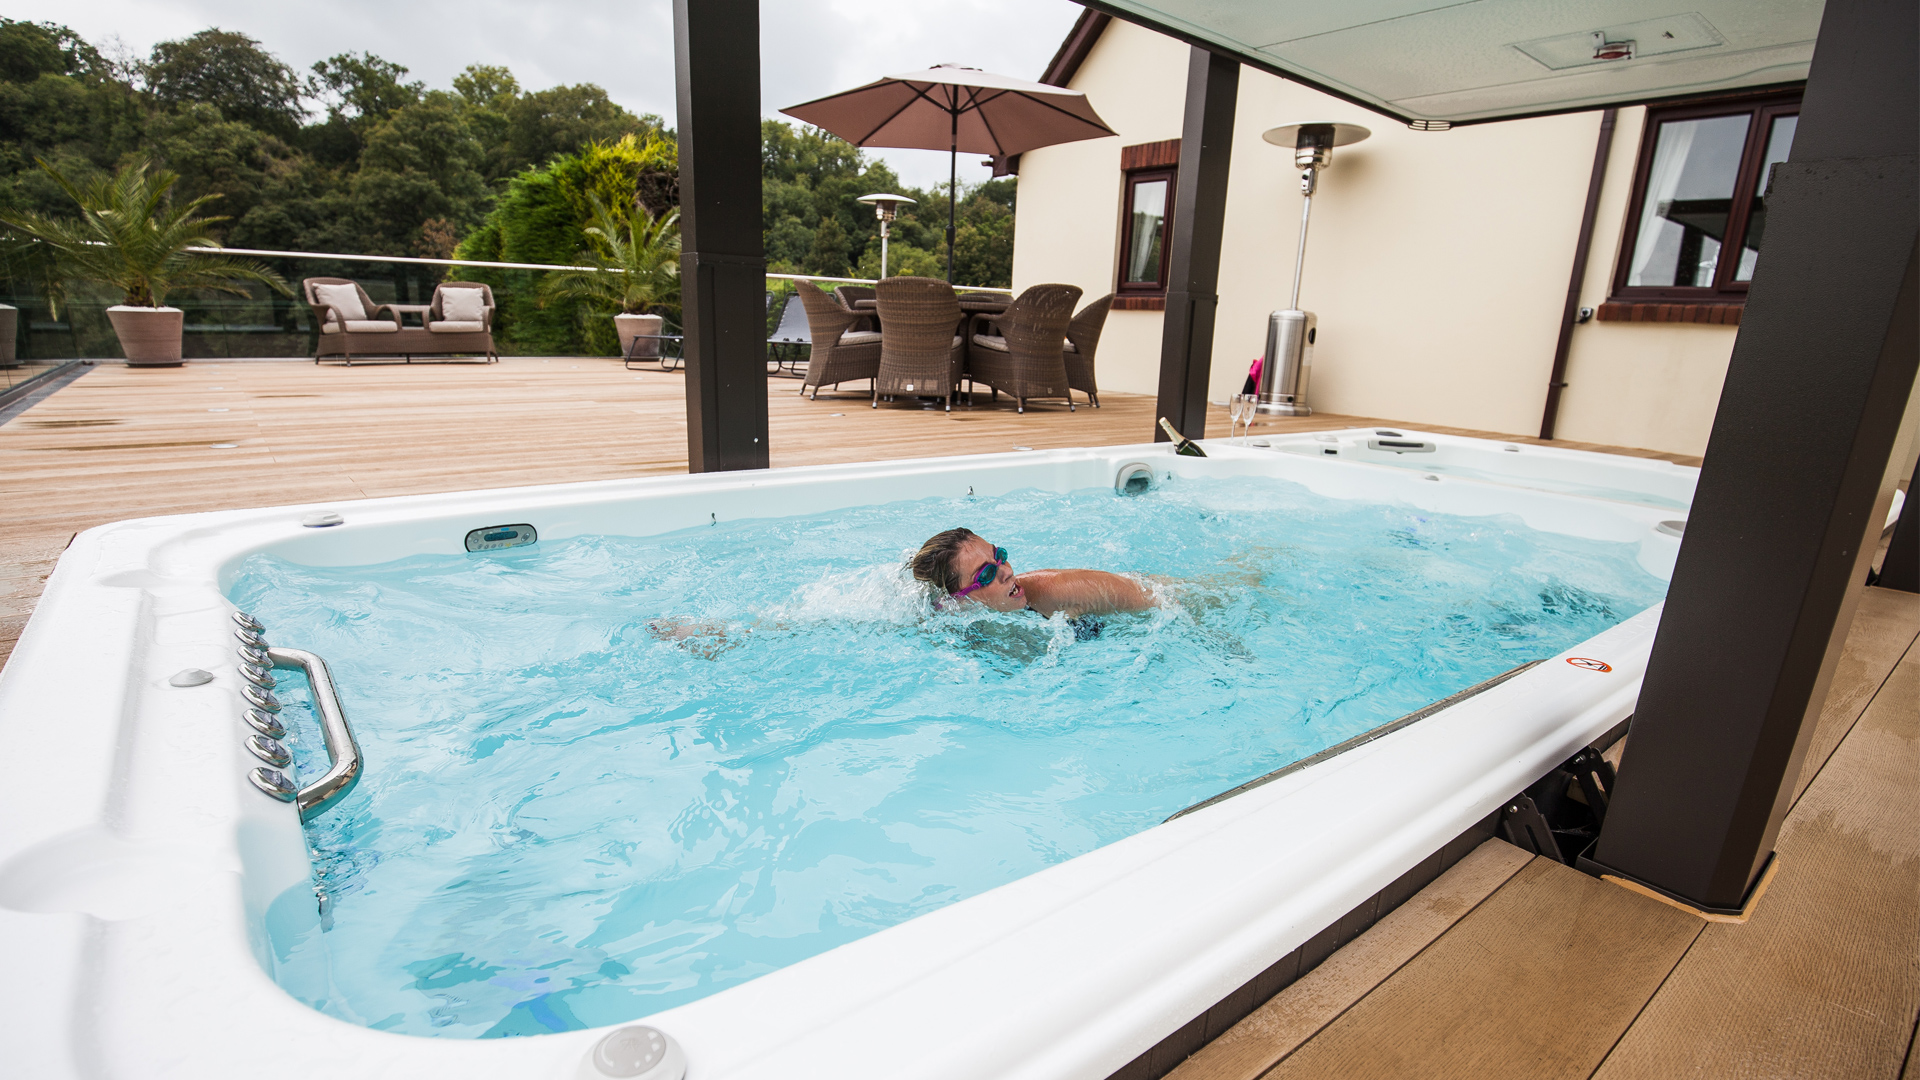 Swimmer in a Hydropool Swimspa from our Bristol hot tub & swimspa showroom. Our self-cleaning swimspas also double us a large hot tub.